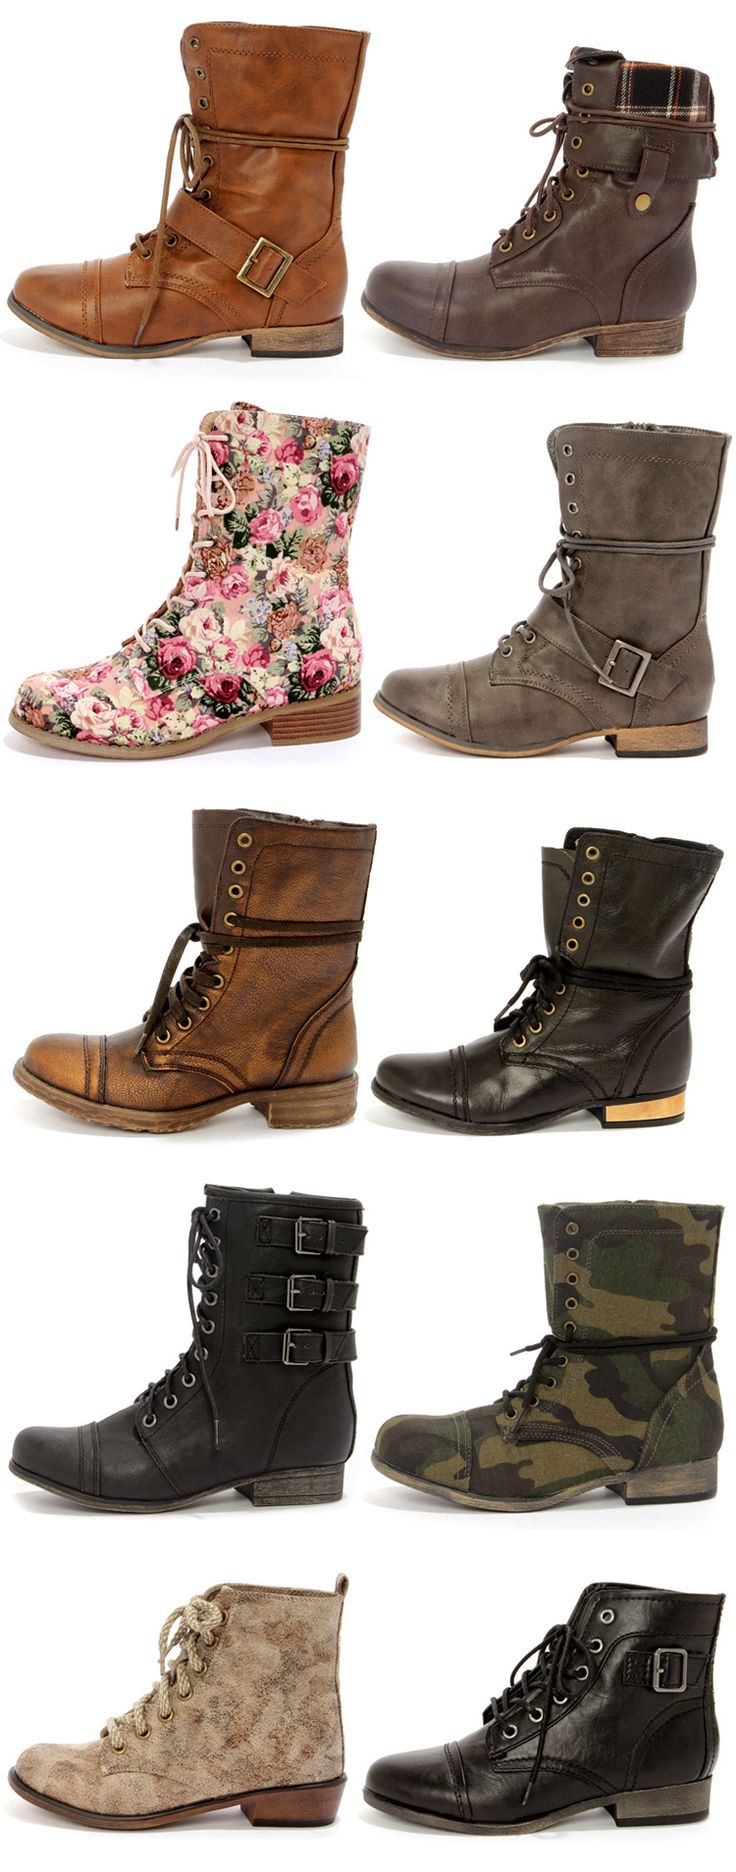 262 best SHOES<3 images on Pinterest | Shoes, Boots and Knee boots